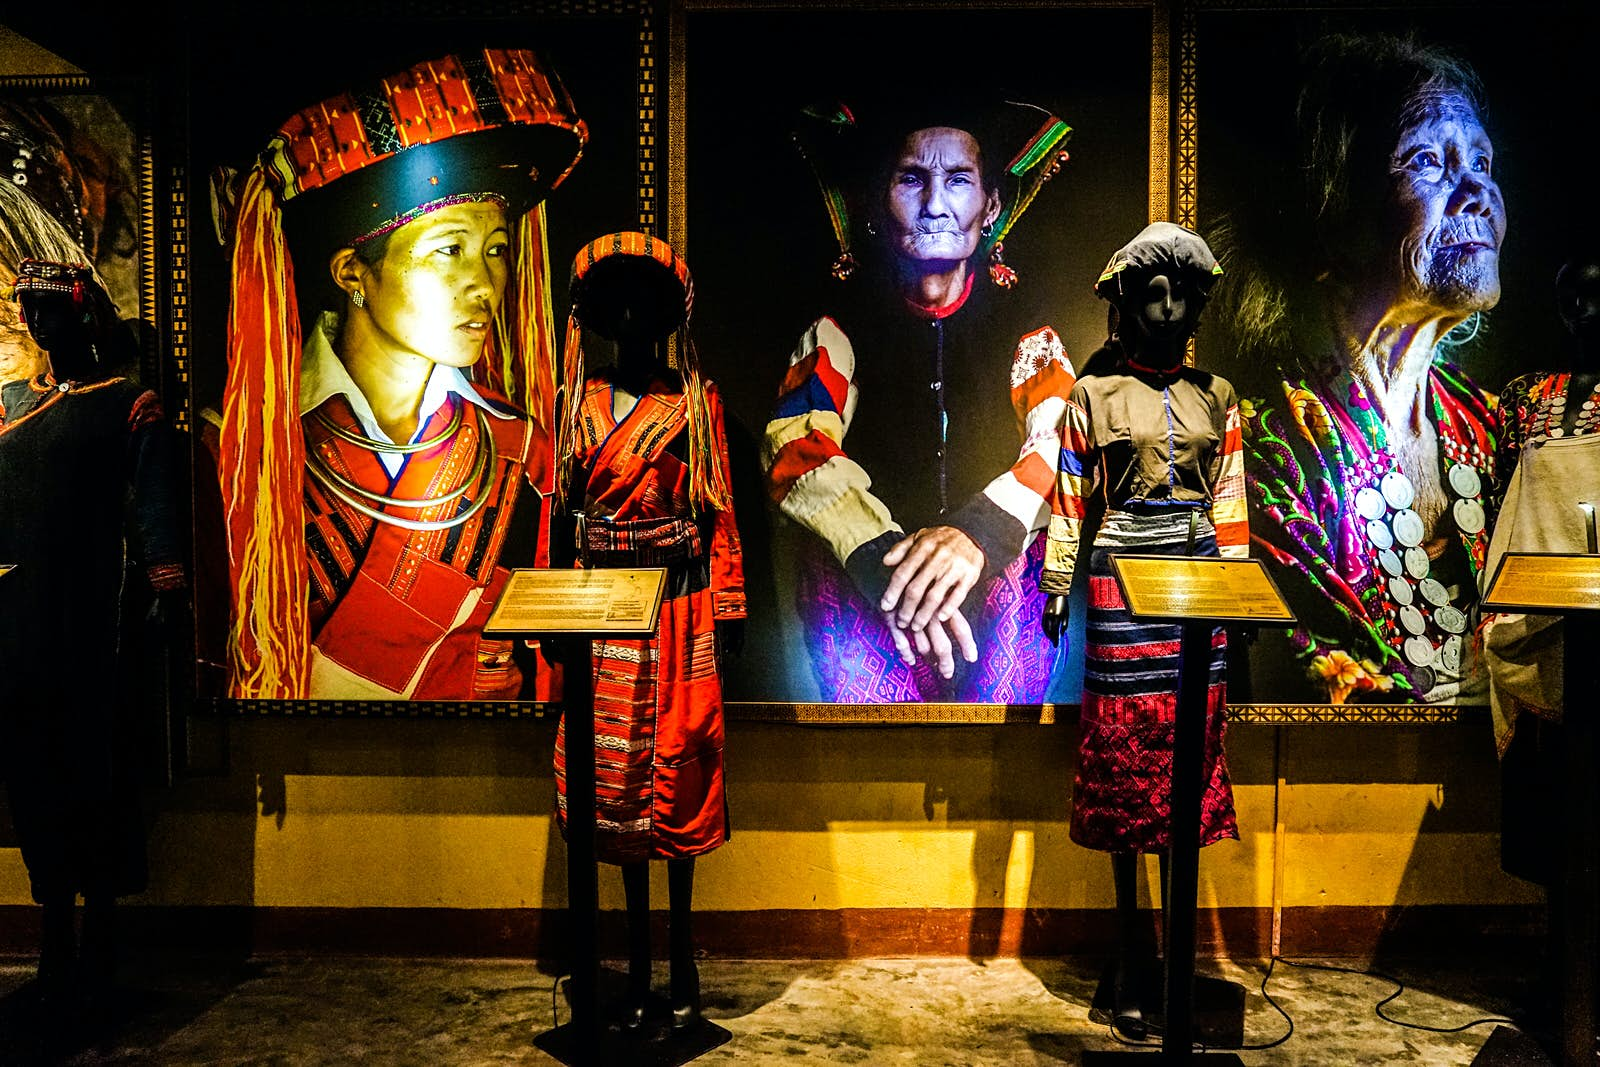 Two mannequins wearing traditional clothing stand in front of three large portraits of women in similar traditional clothing